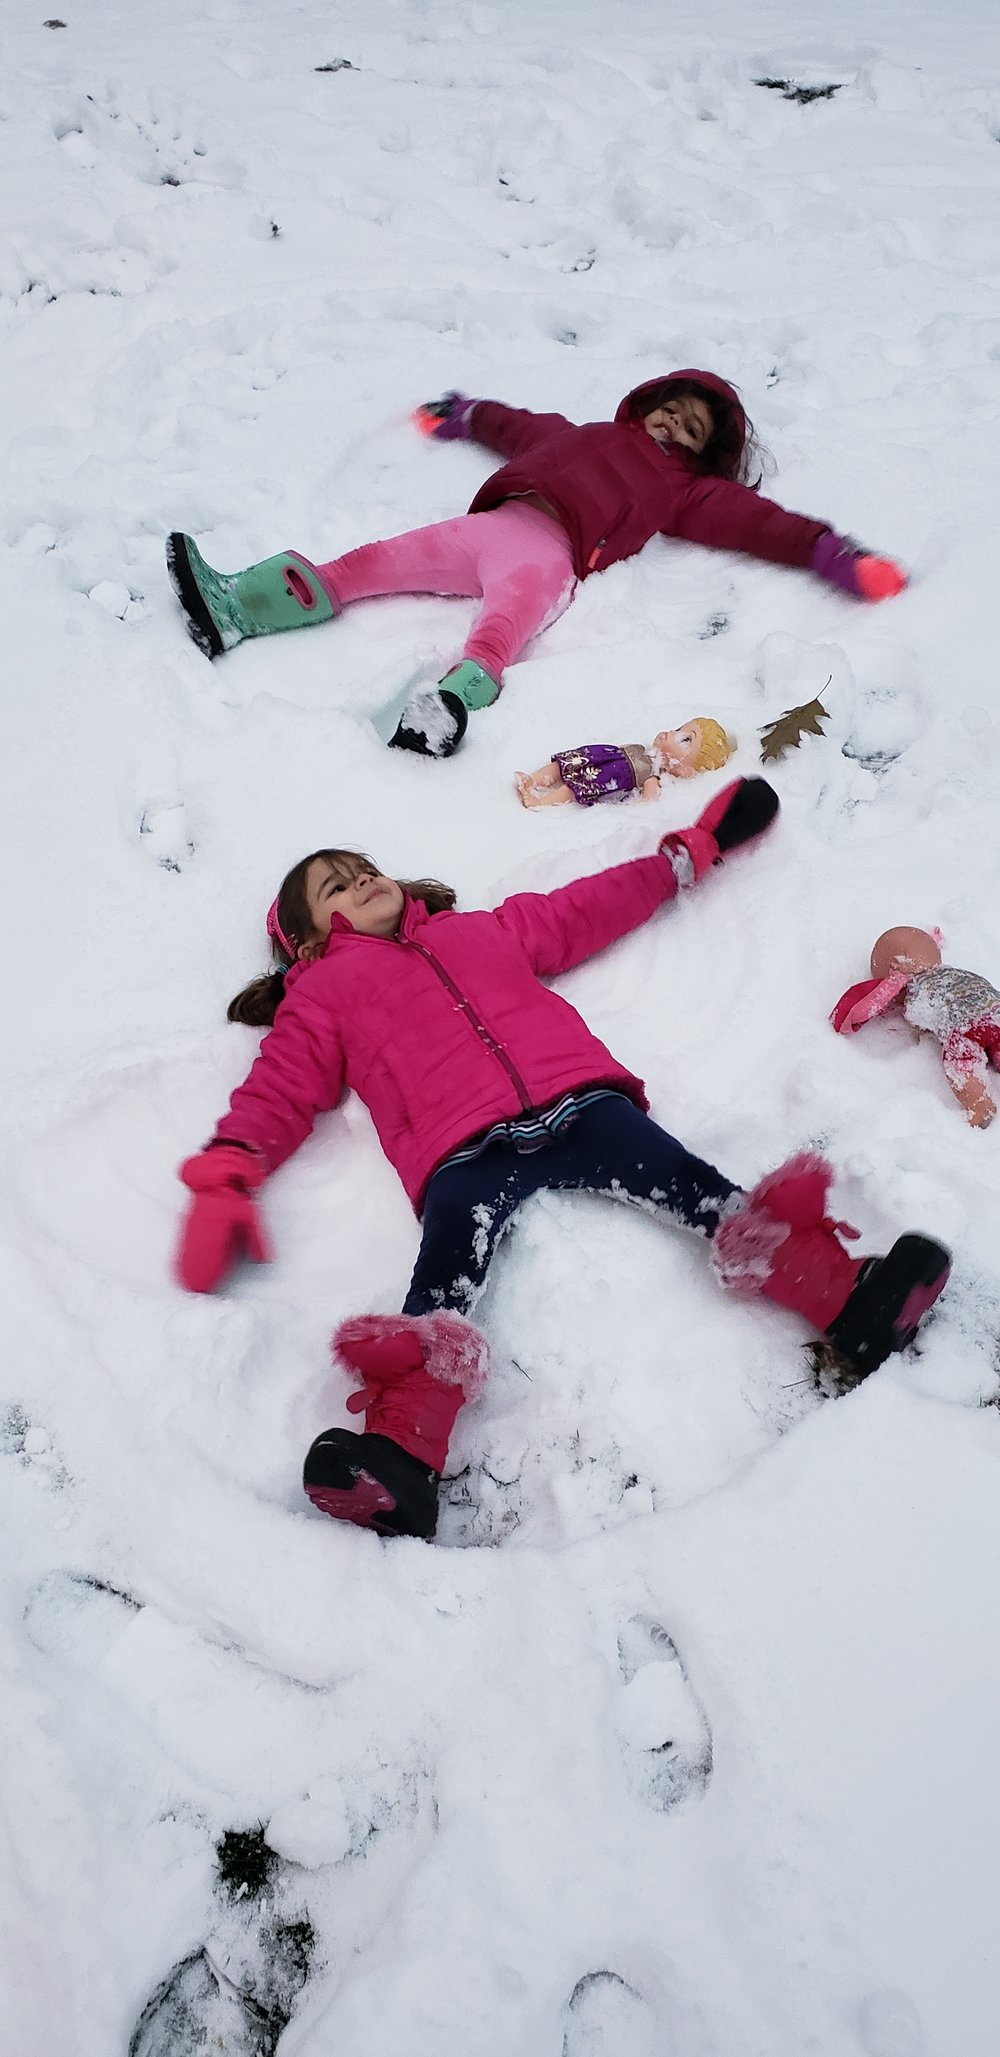 Making snow angels in our yard